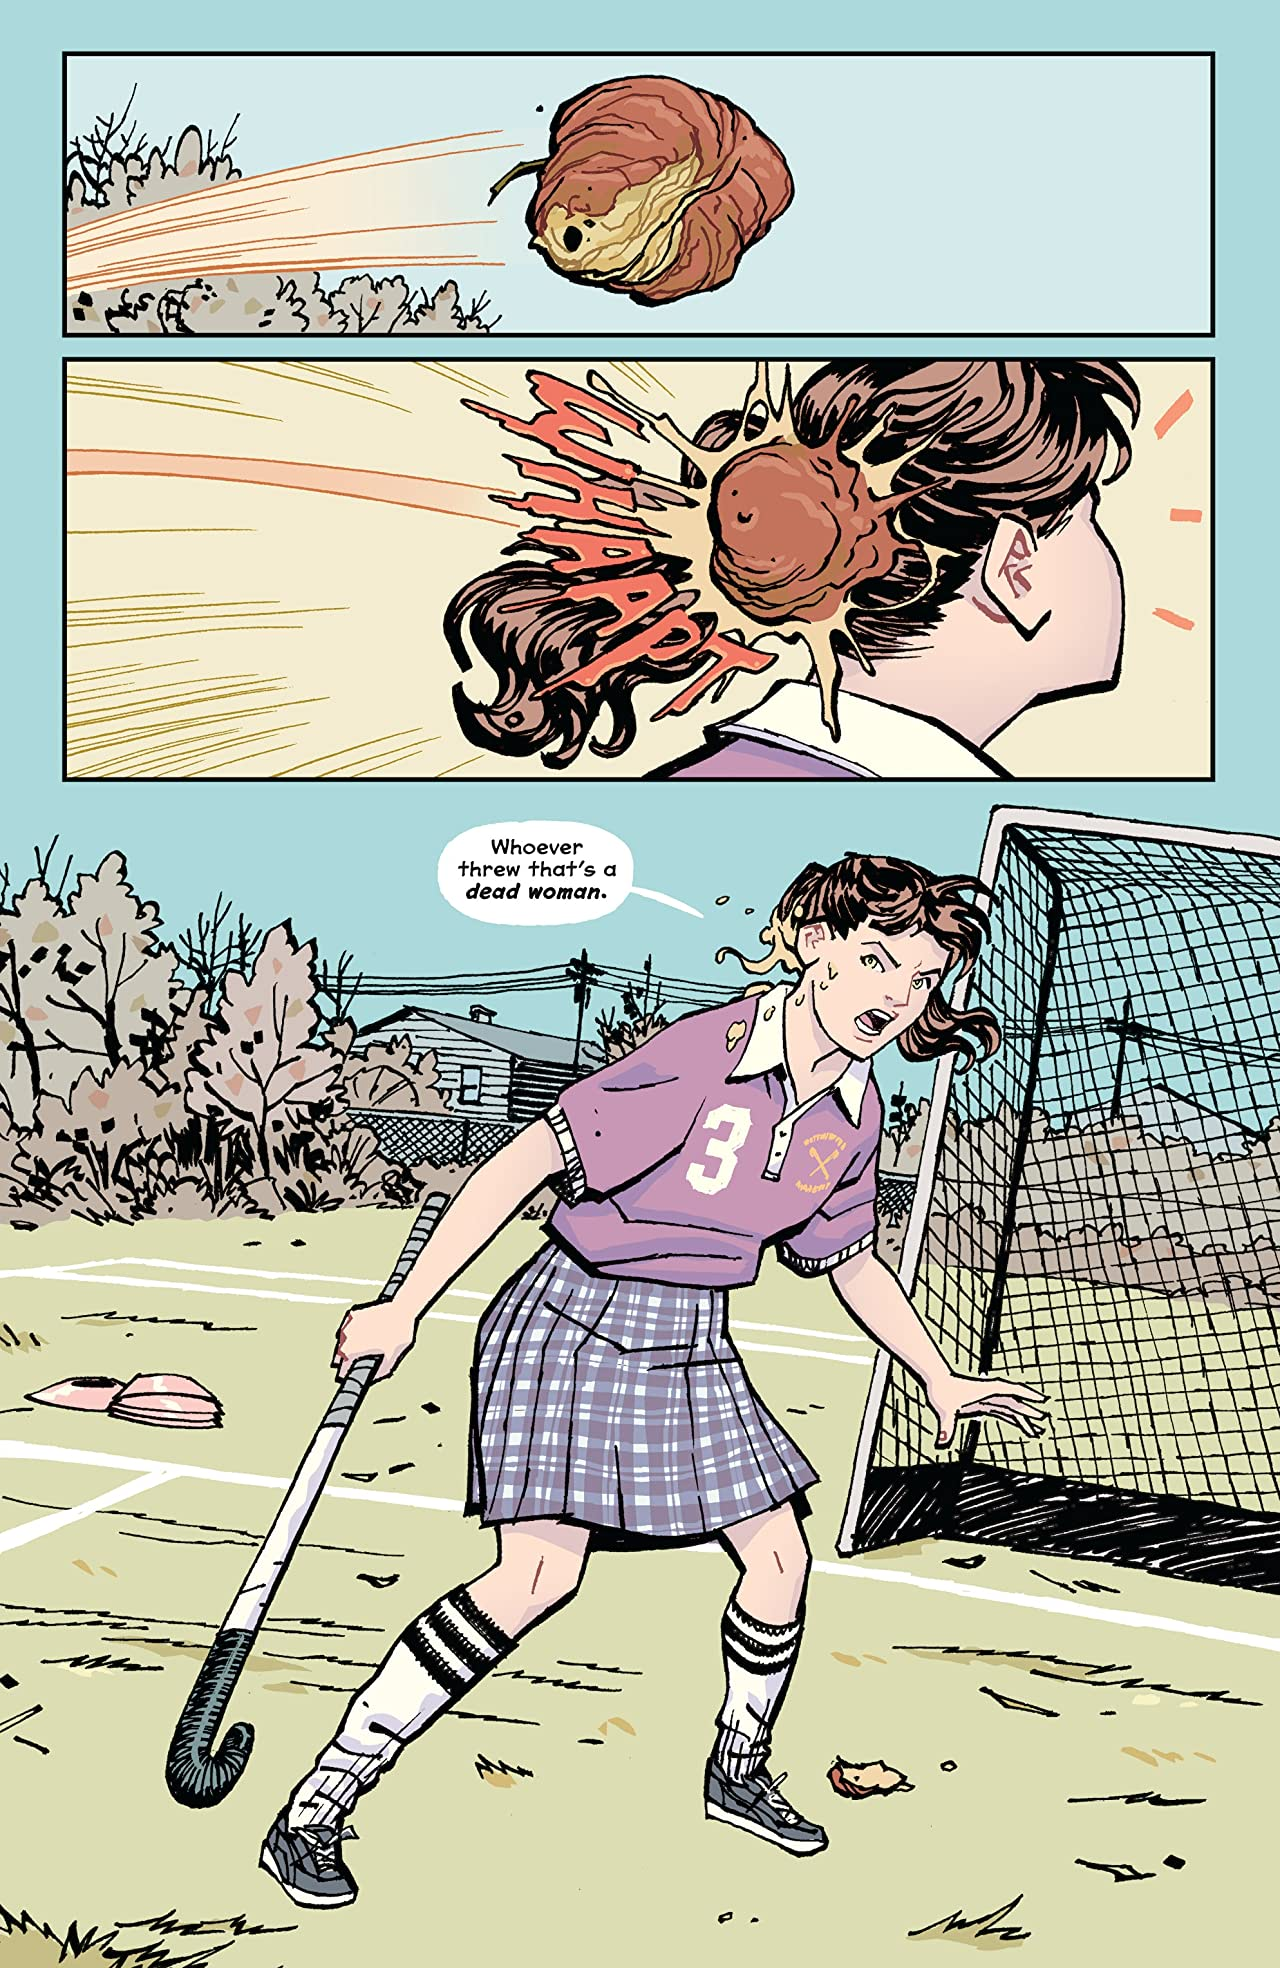 Paper Girls Vol. 3